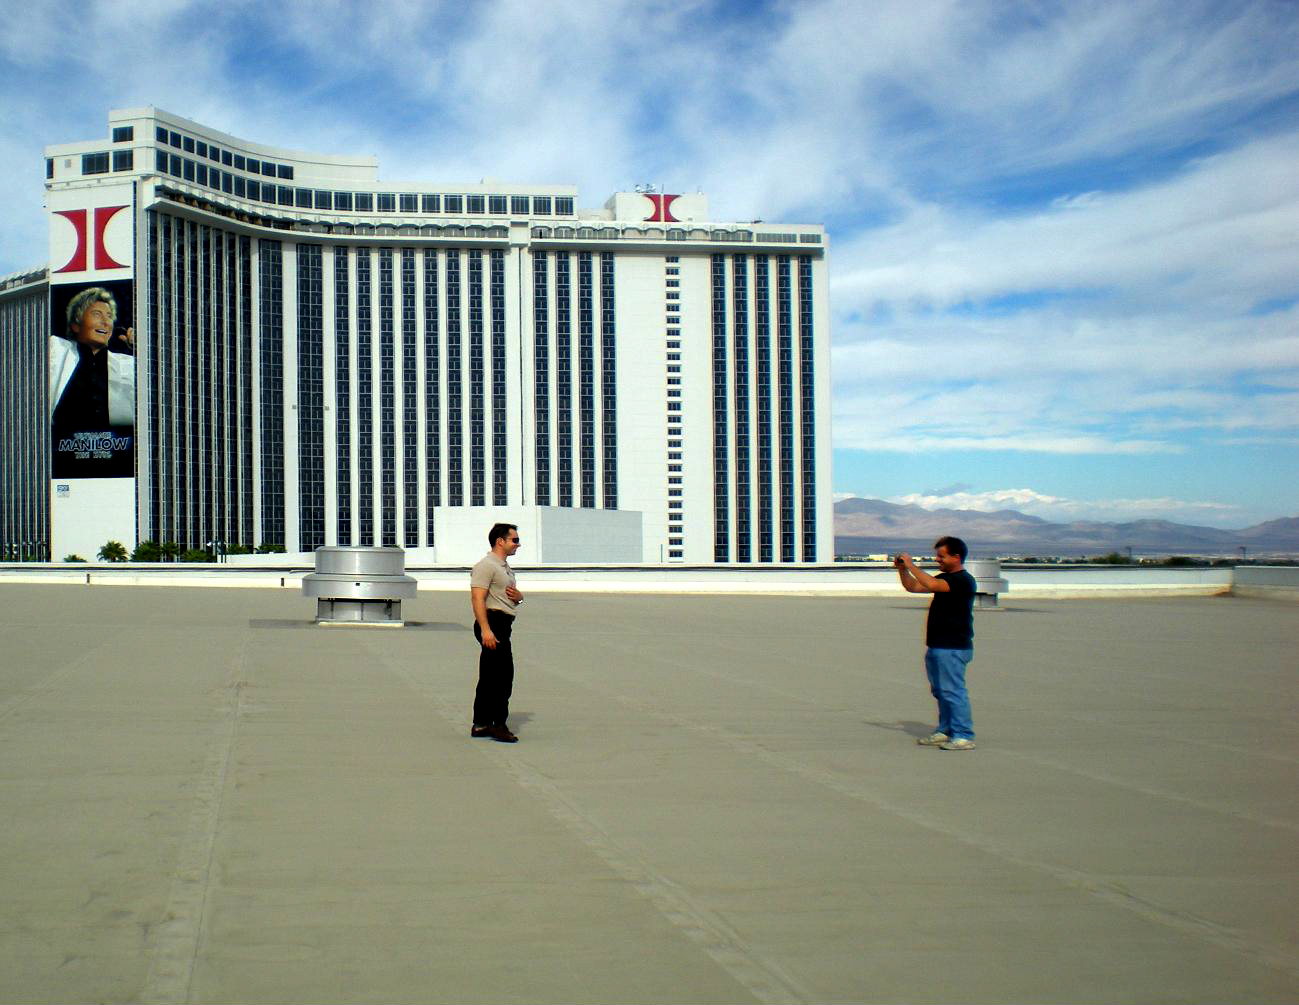 Las Vegas, Nevada, USA. 2008.